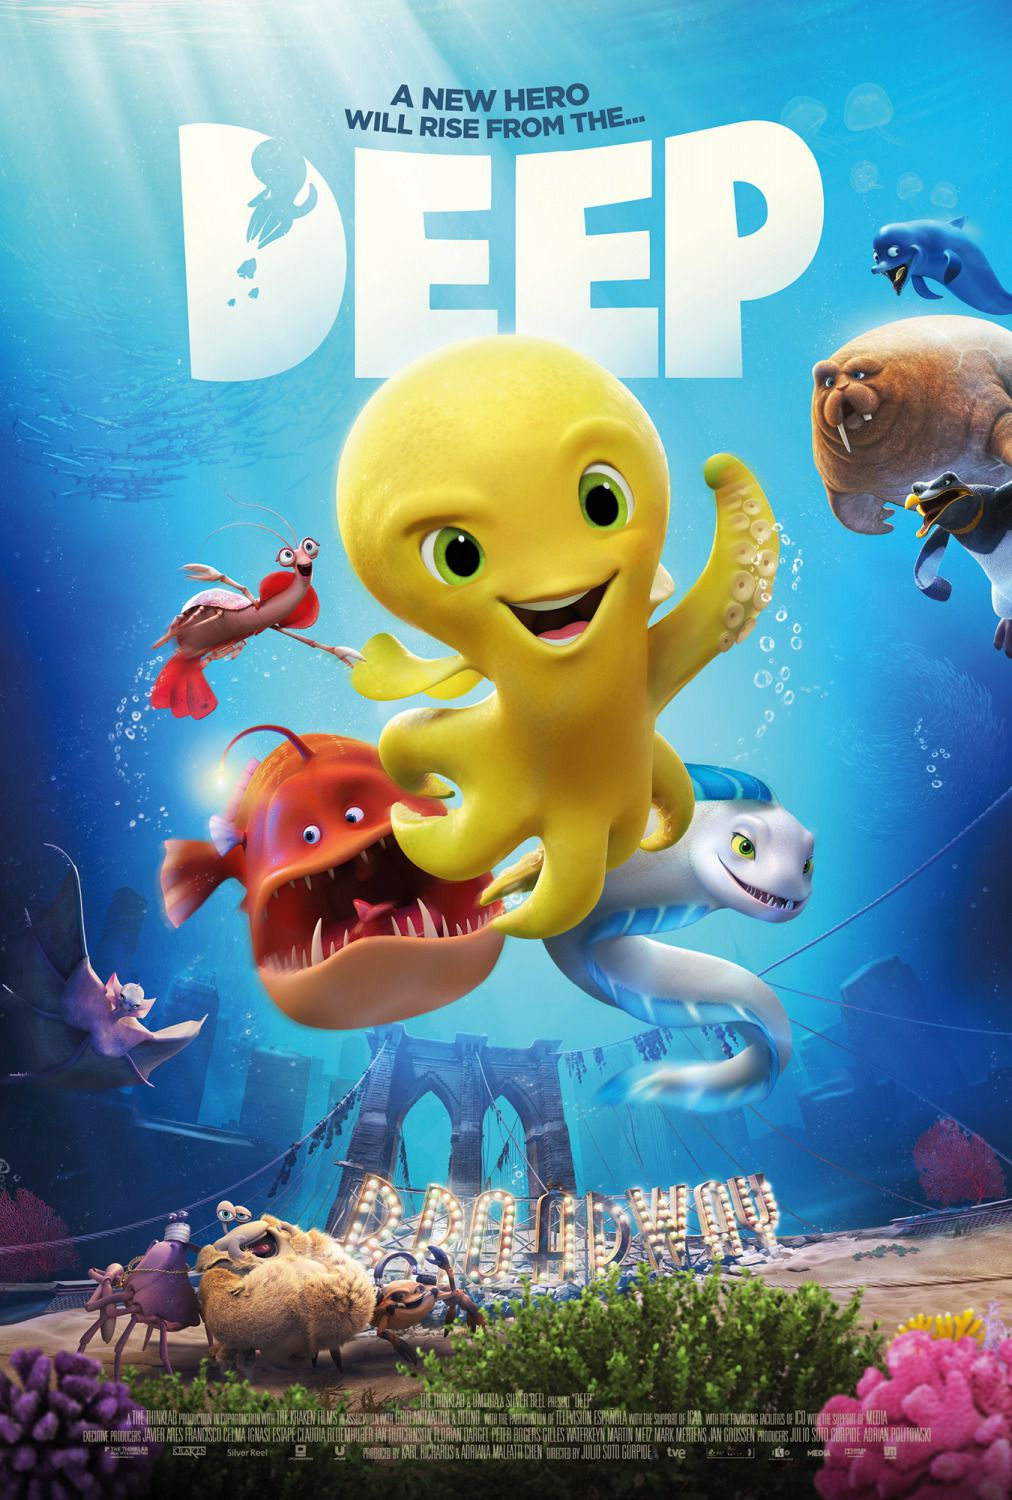 Deep - animated film poster - yellow octopus polpo polipo